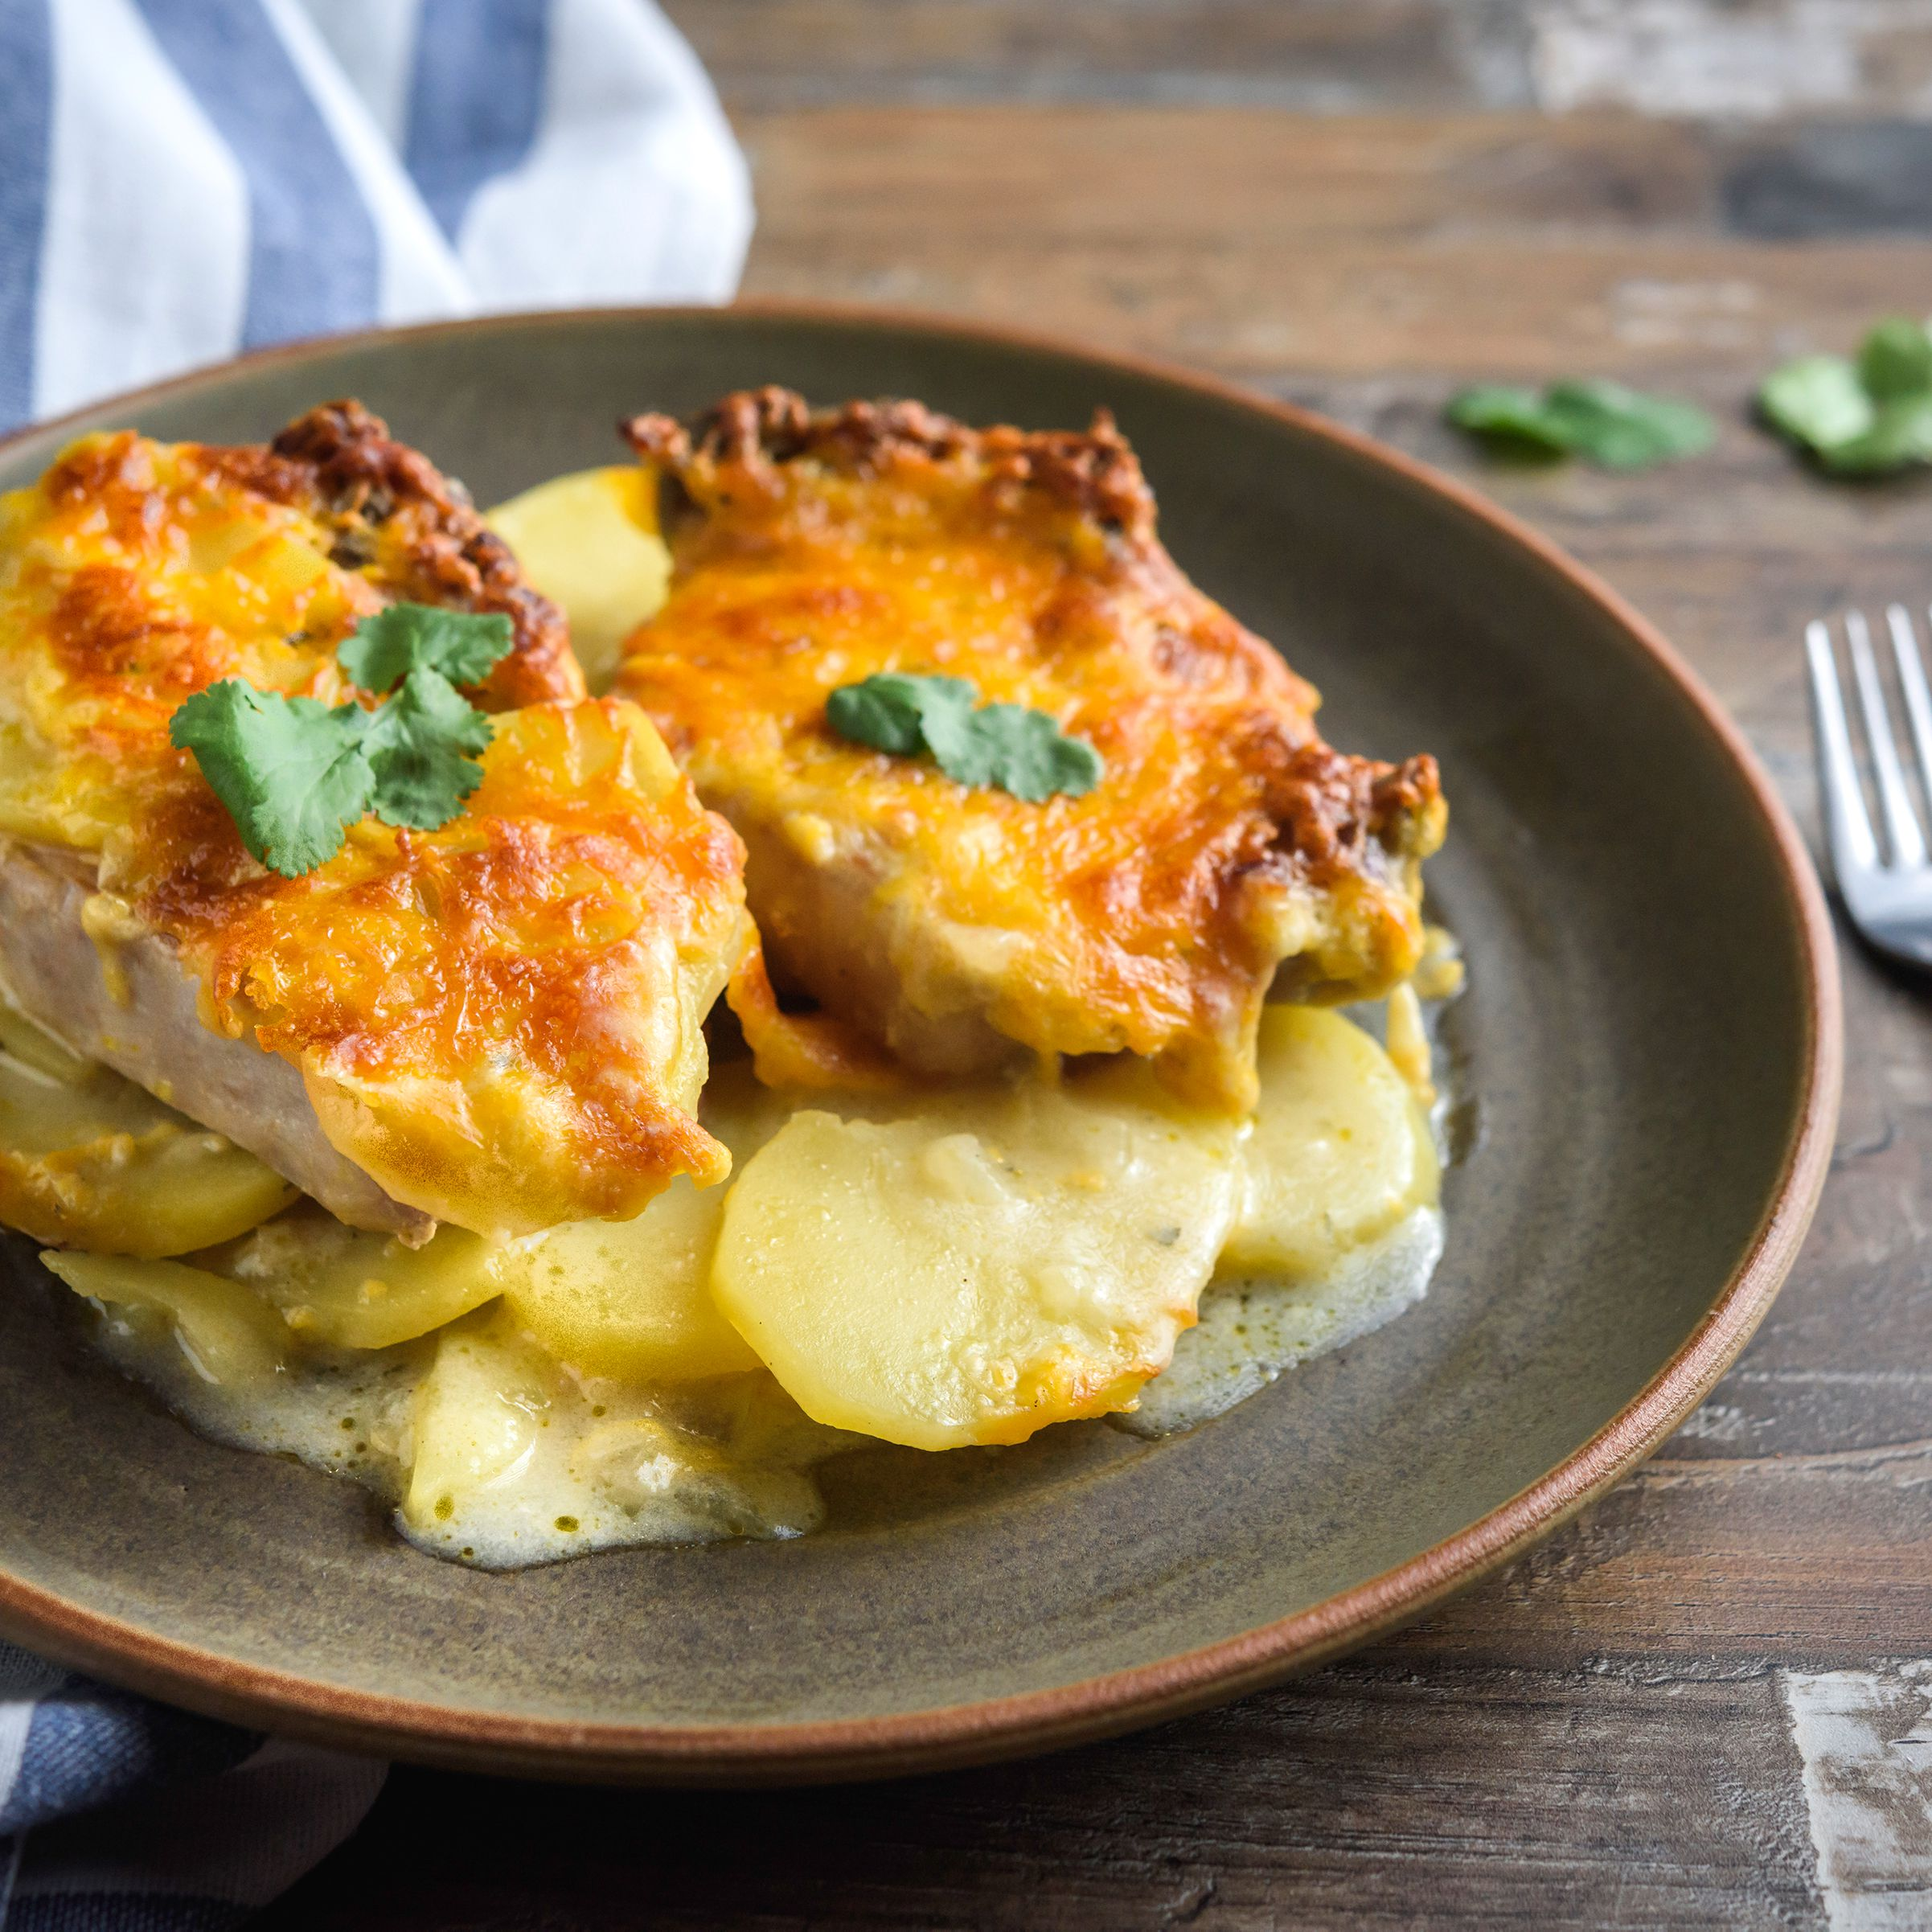 Easy Pork Chop Casserole With Cheese and Potatoes